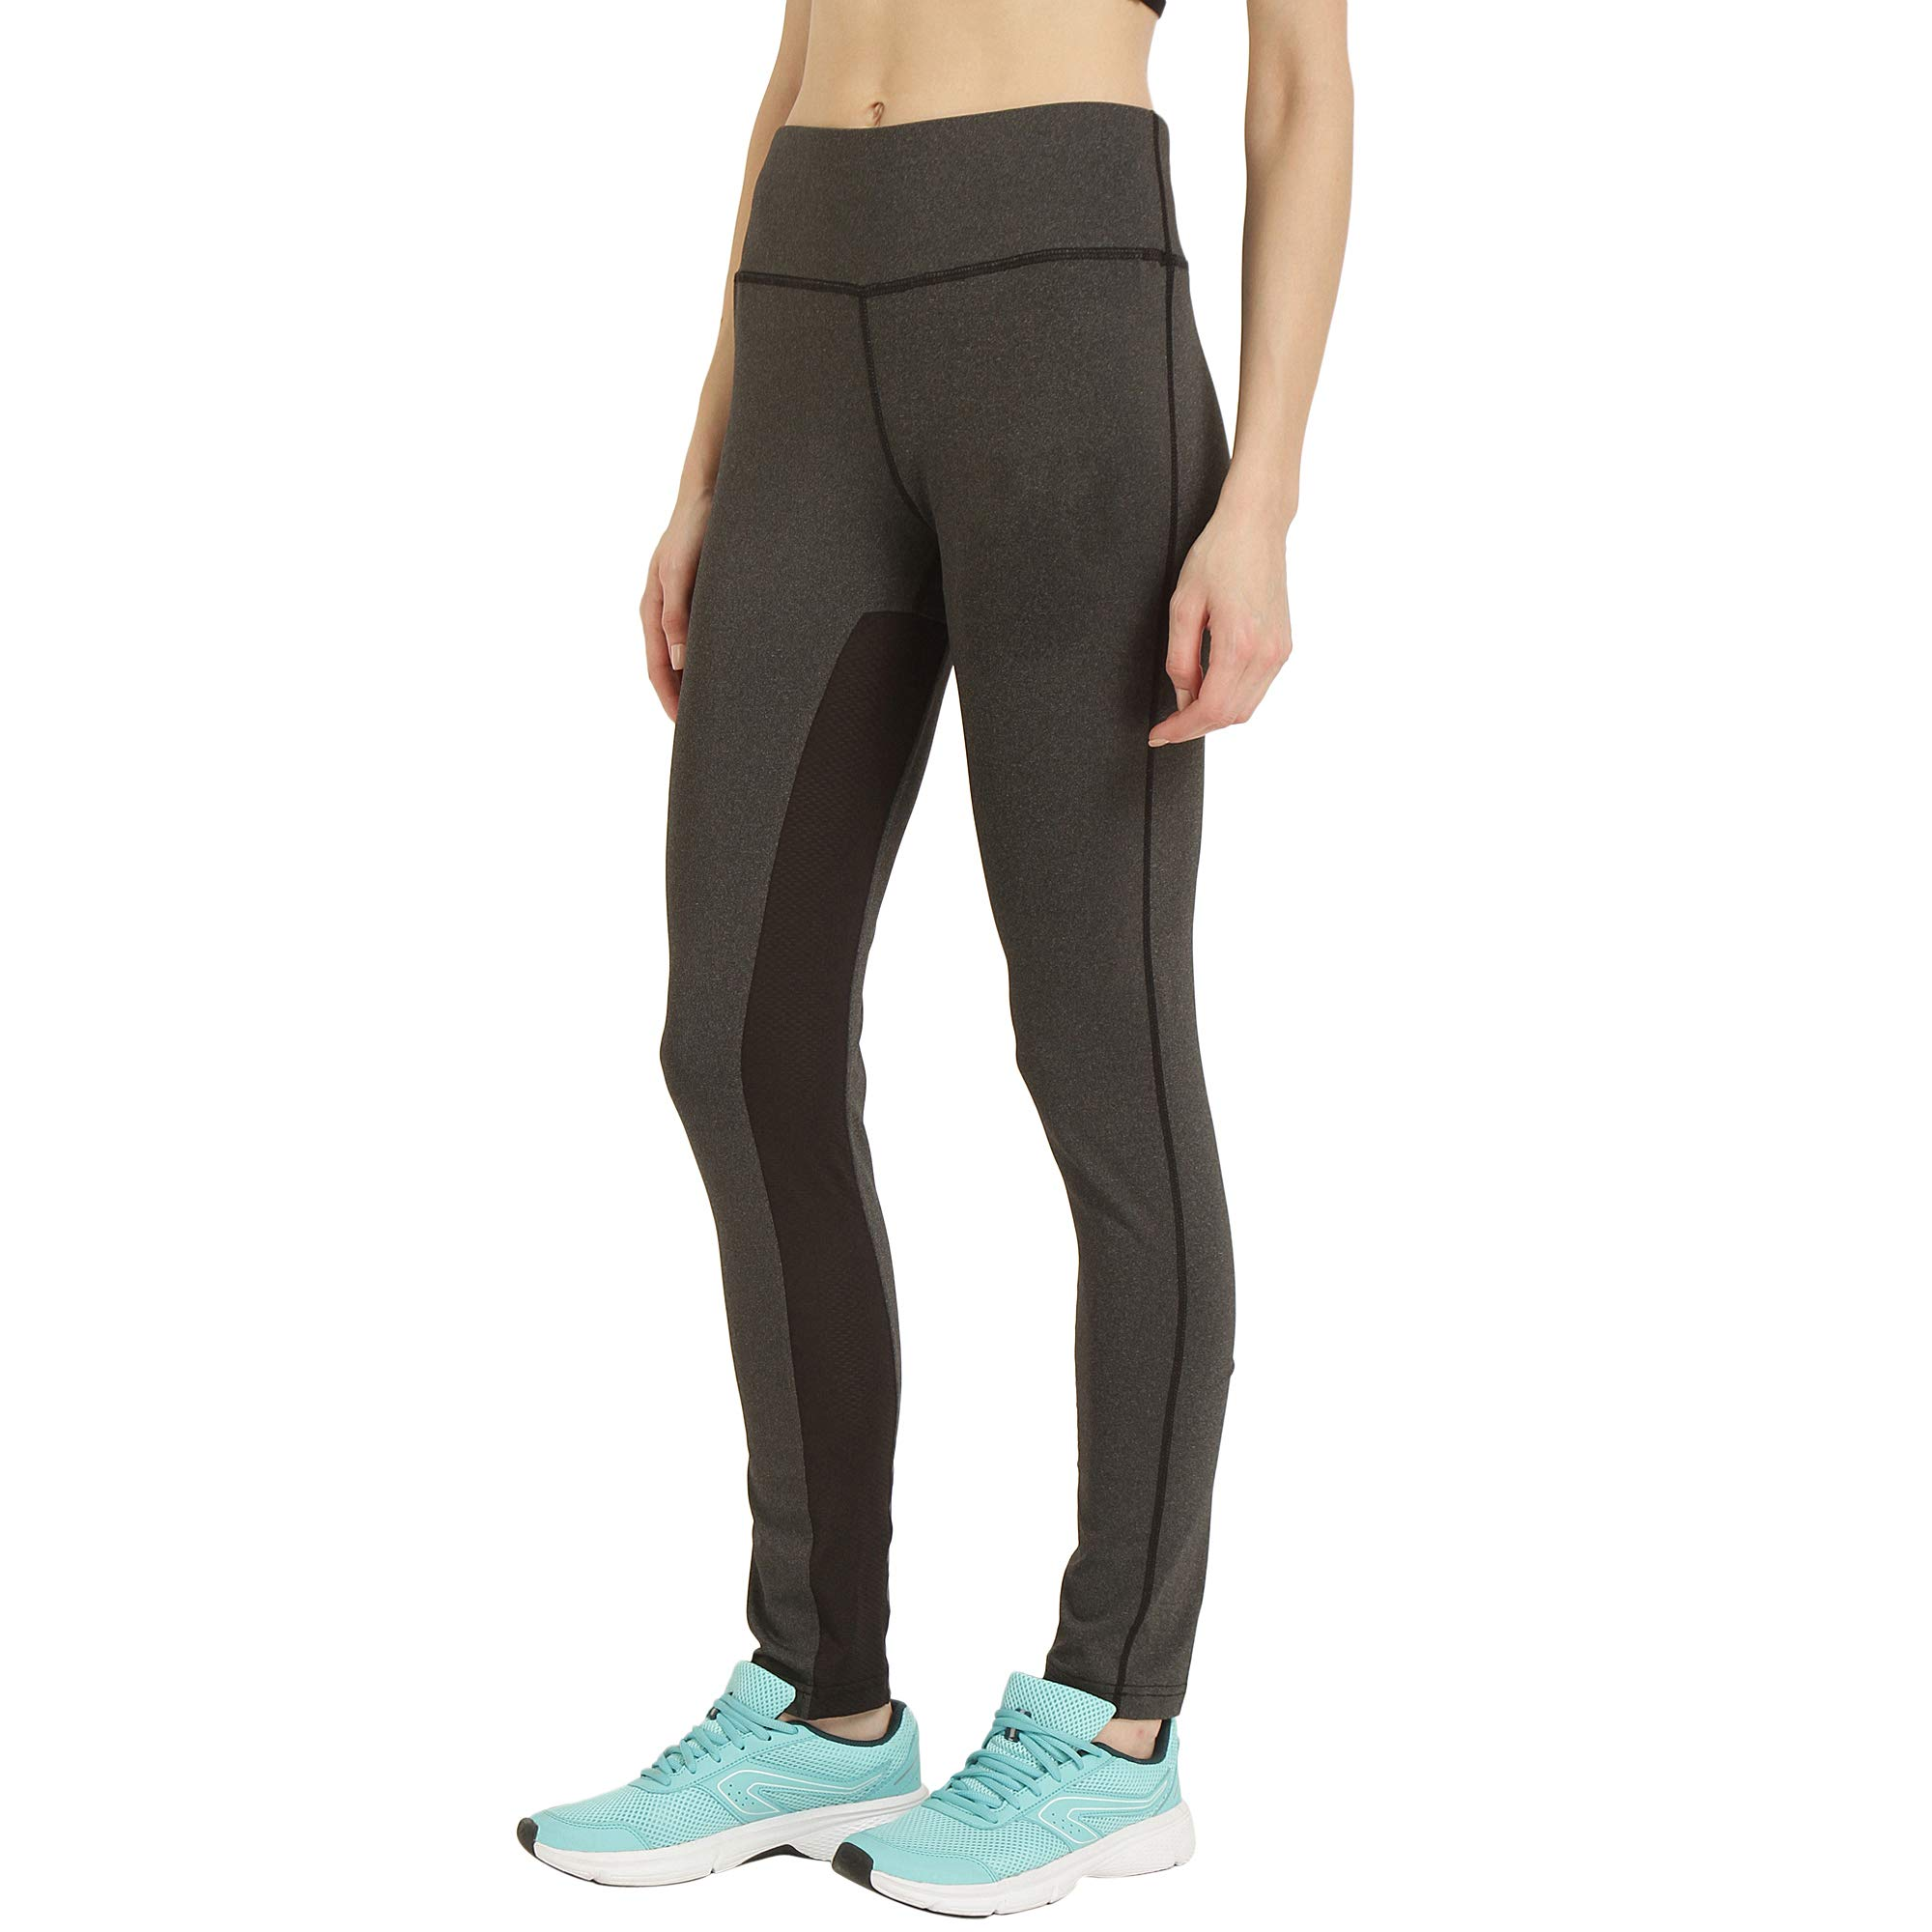 9ee4d2fe6abe2 CHKOKKO Solid Yoga Sports Stretchable High Waist Track Yoga Pant for Womens  product image